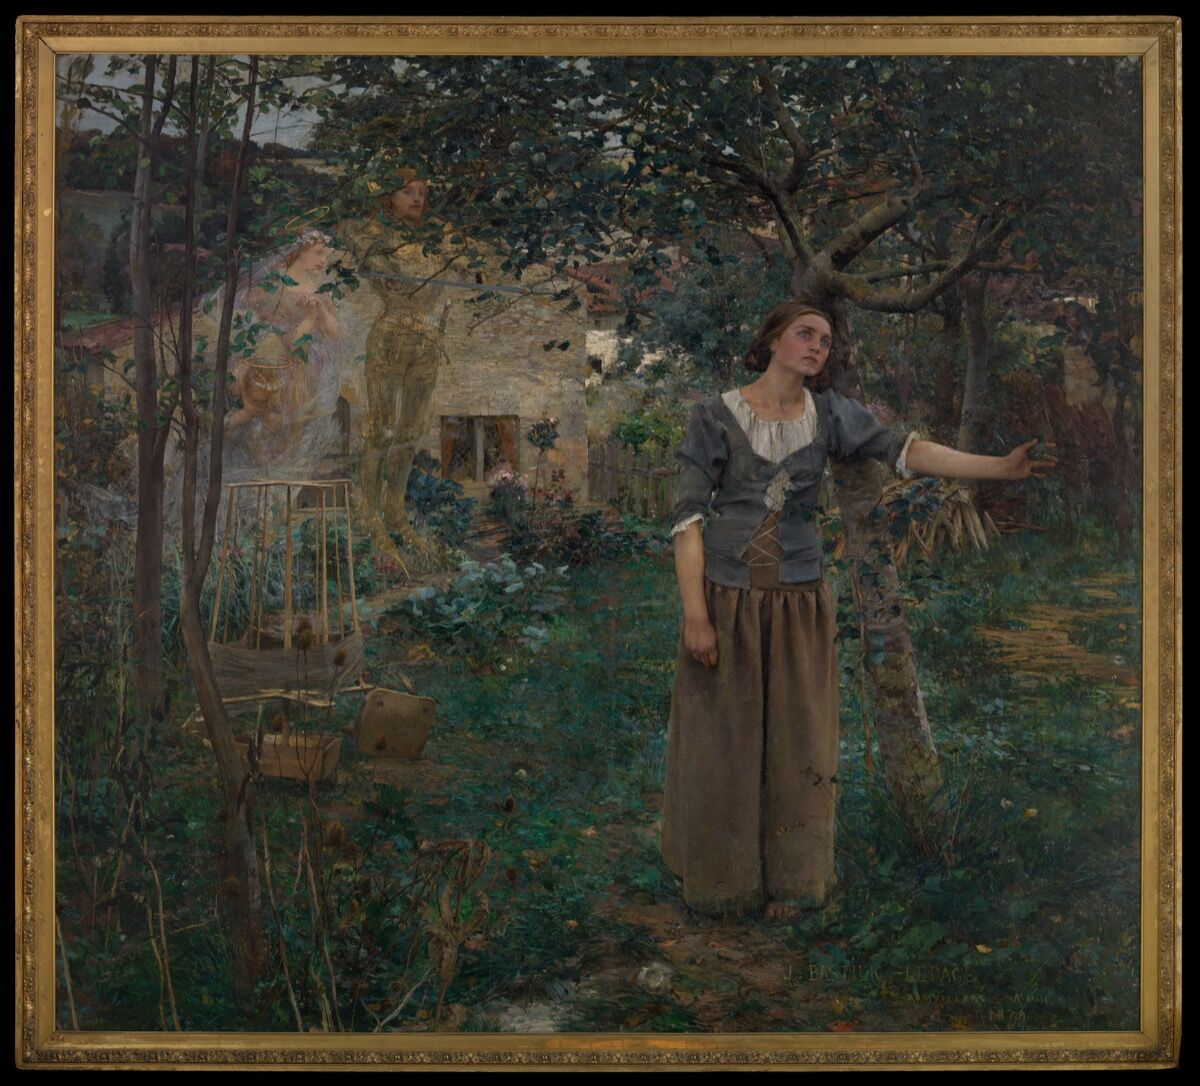 Jules Bastien-Lepage, Joan of Arc, 1879. Courtesy of The Metropolitan Museum of Art.